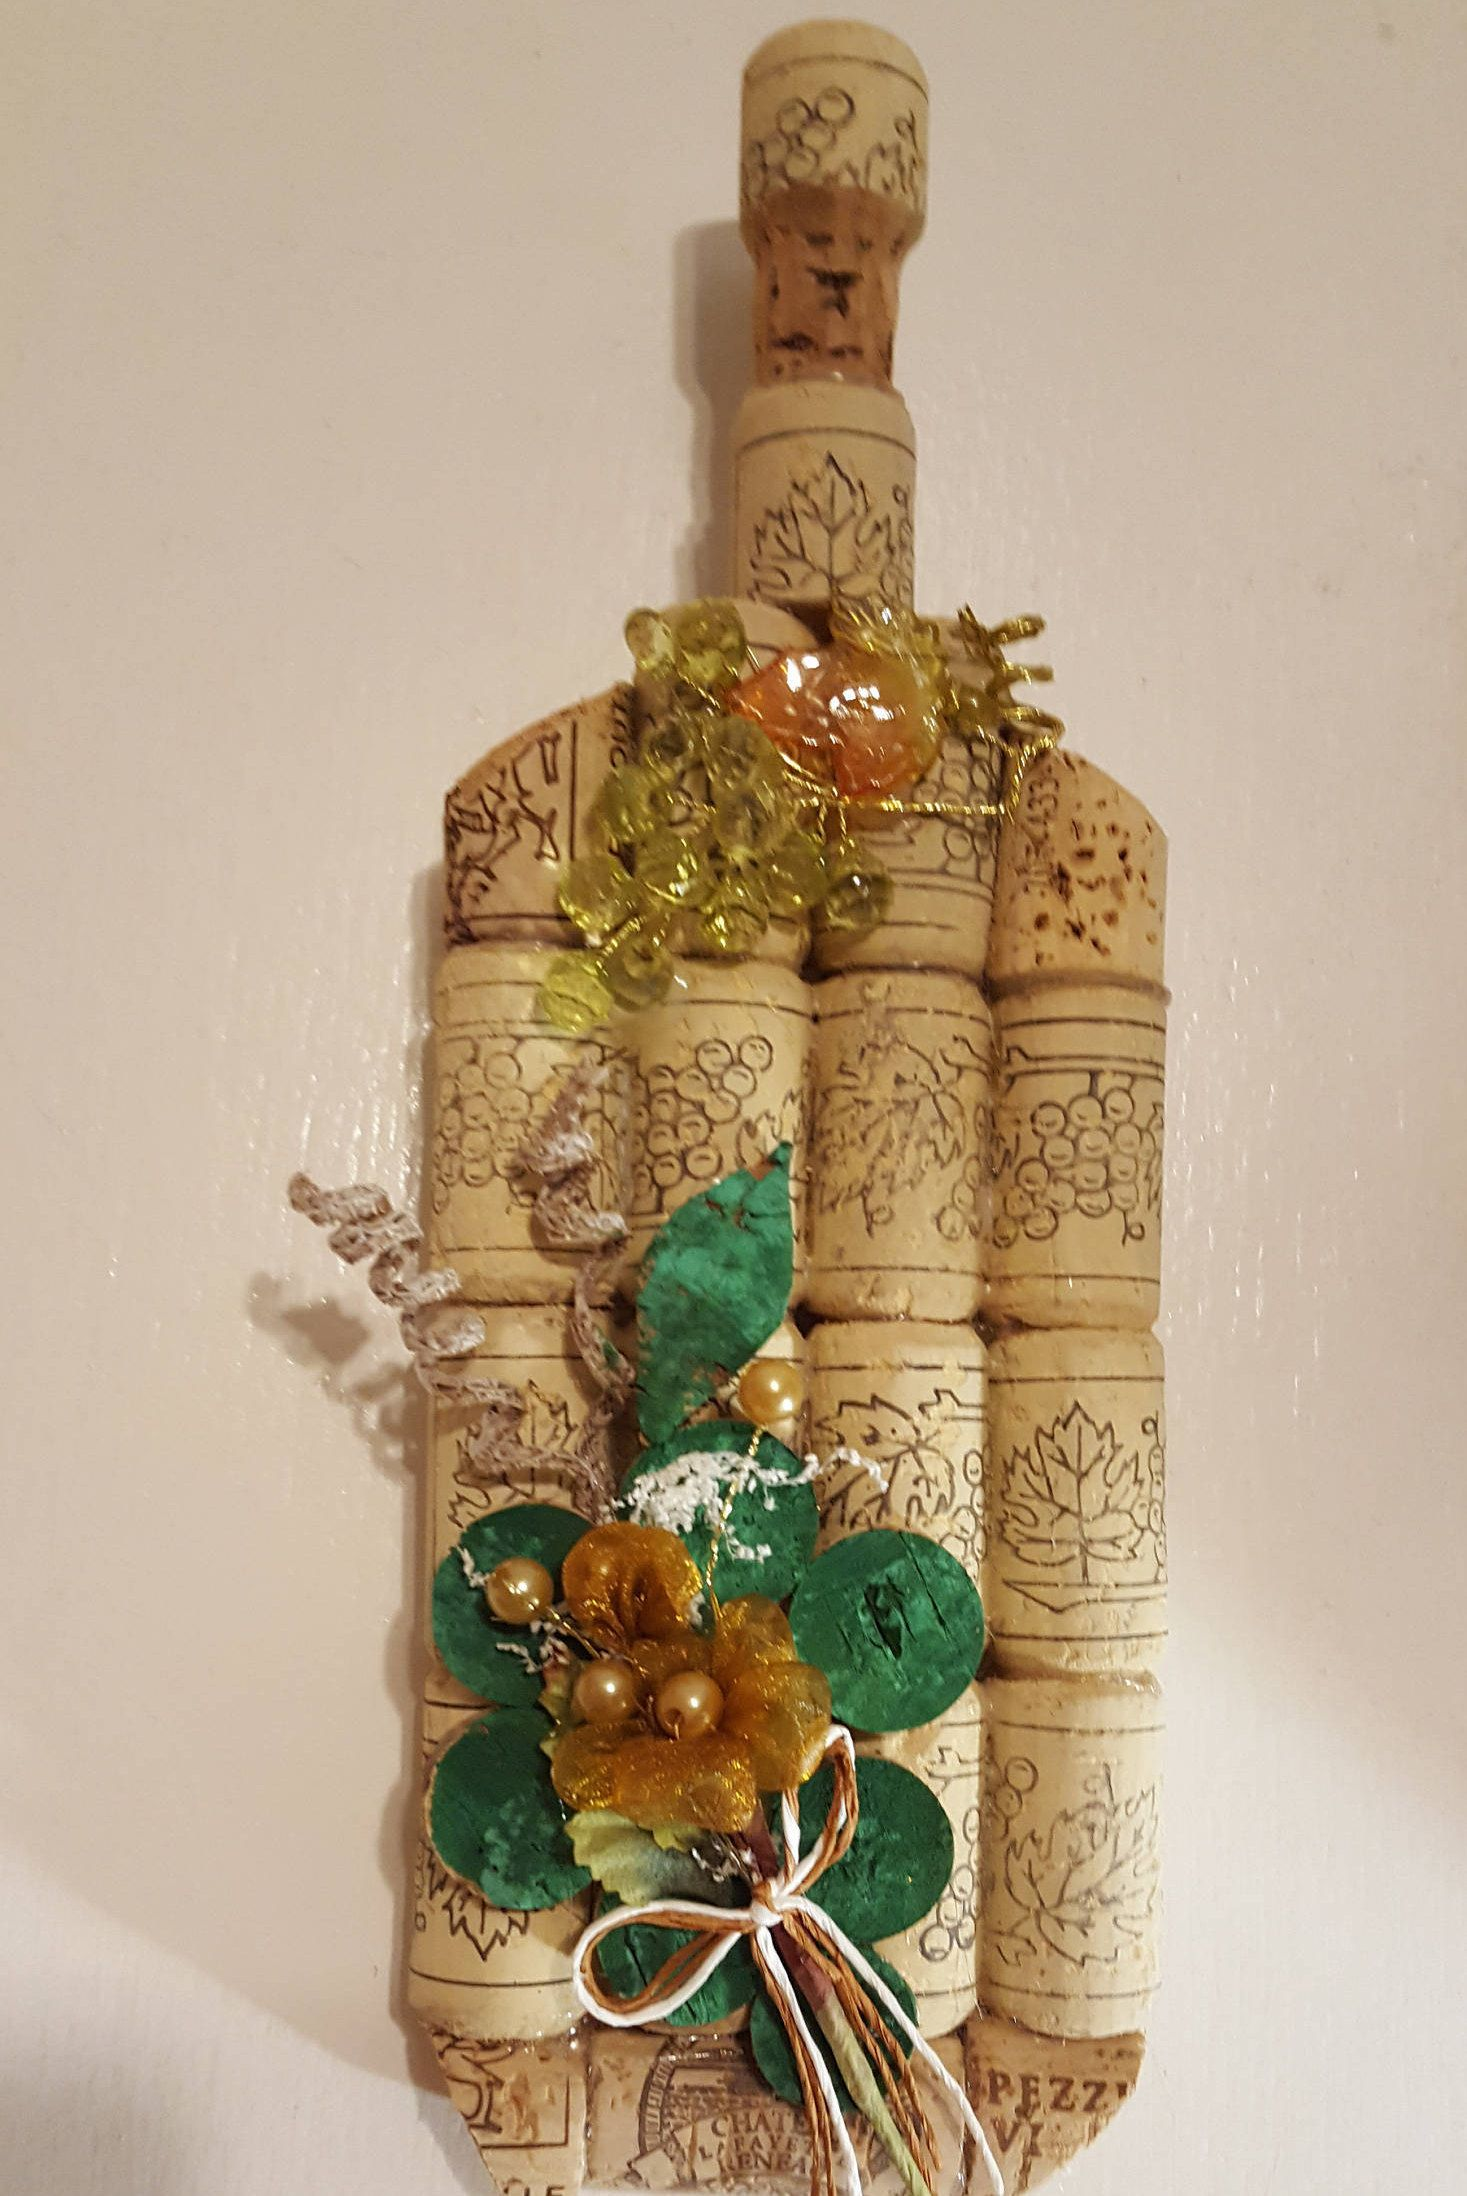 Cork wine bottle rustic cork wine bottle country kitchen wall